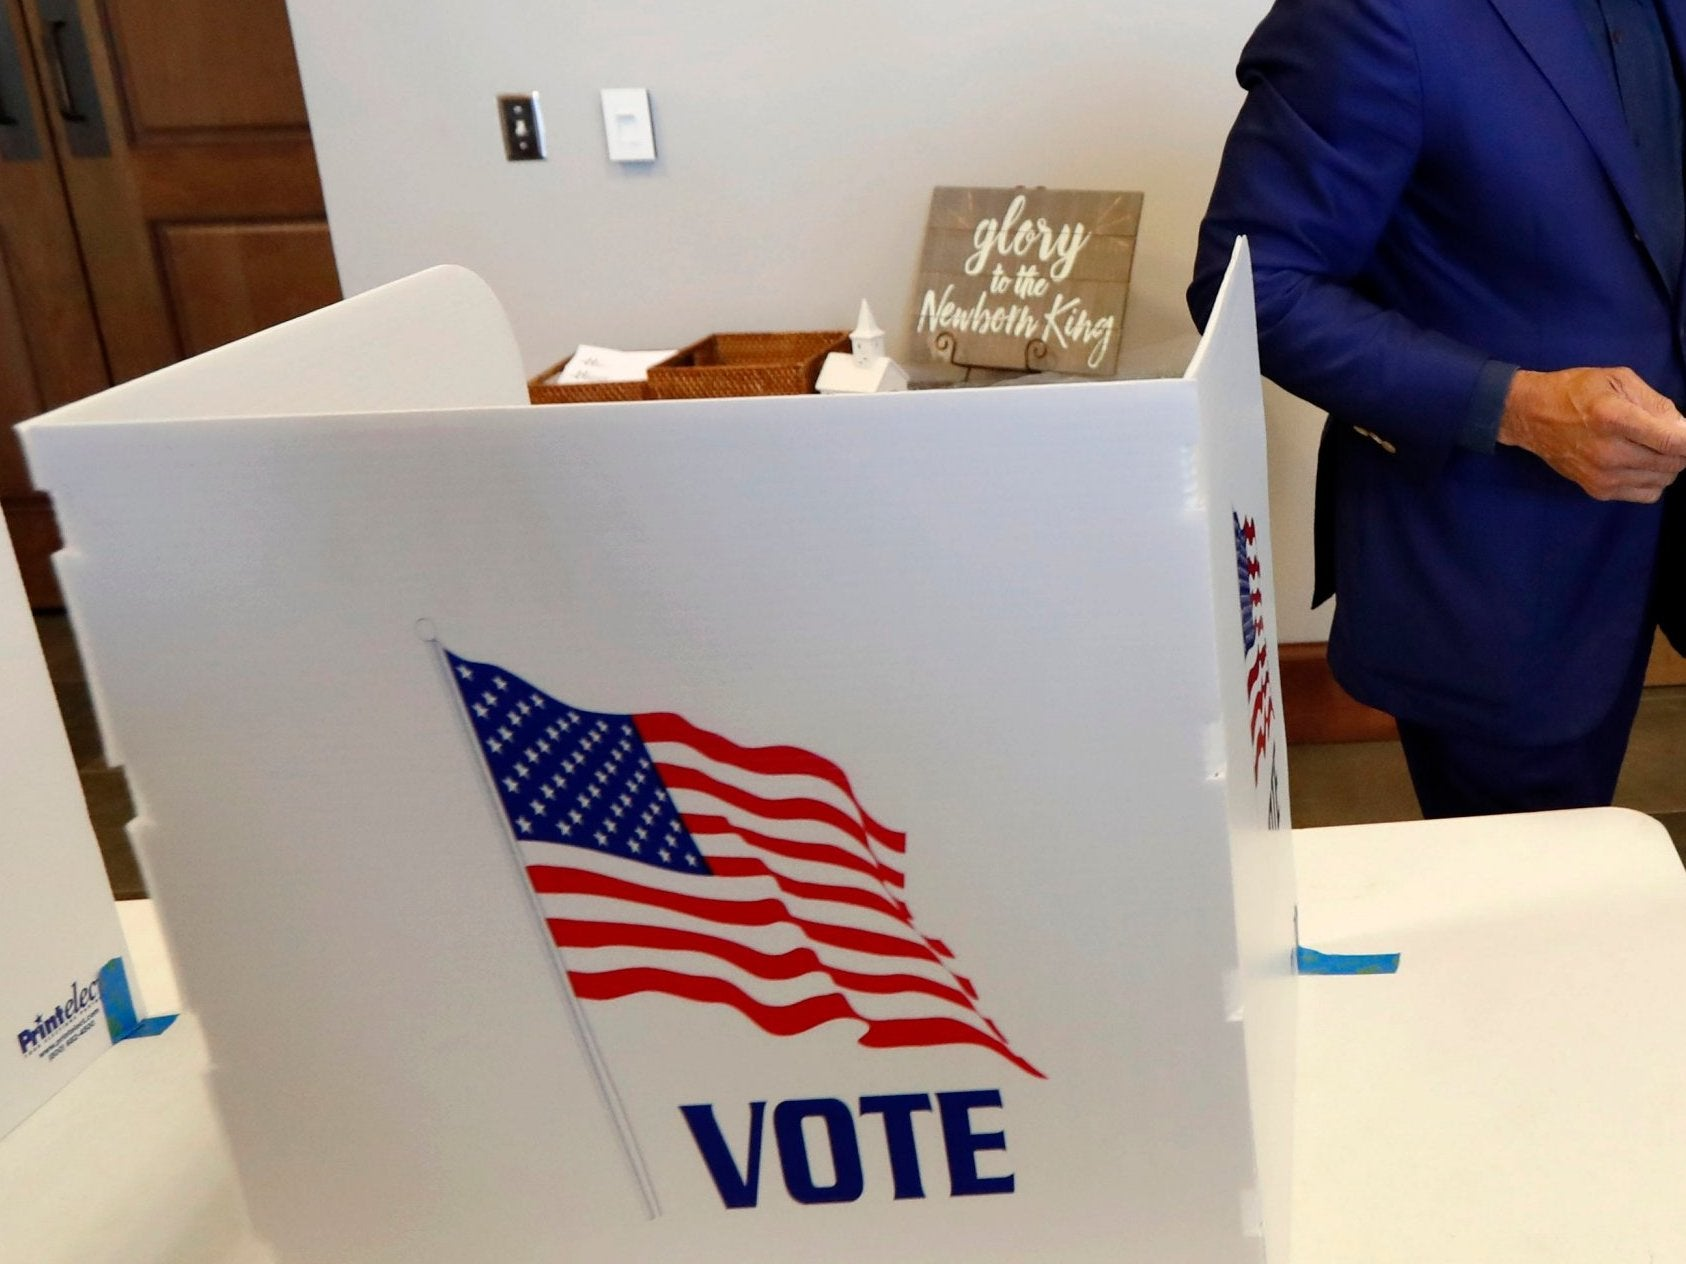 Florida Republicans push ahead with bill to 'undermine voters' who approved restoring voting rights to ex-felons